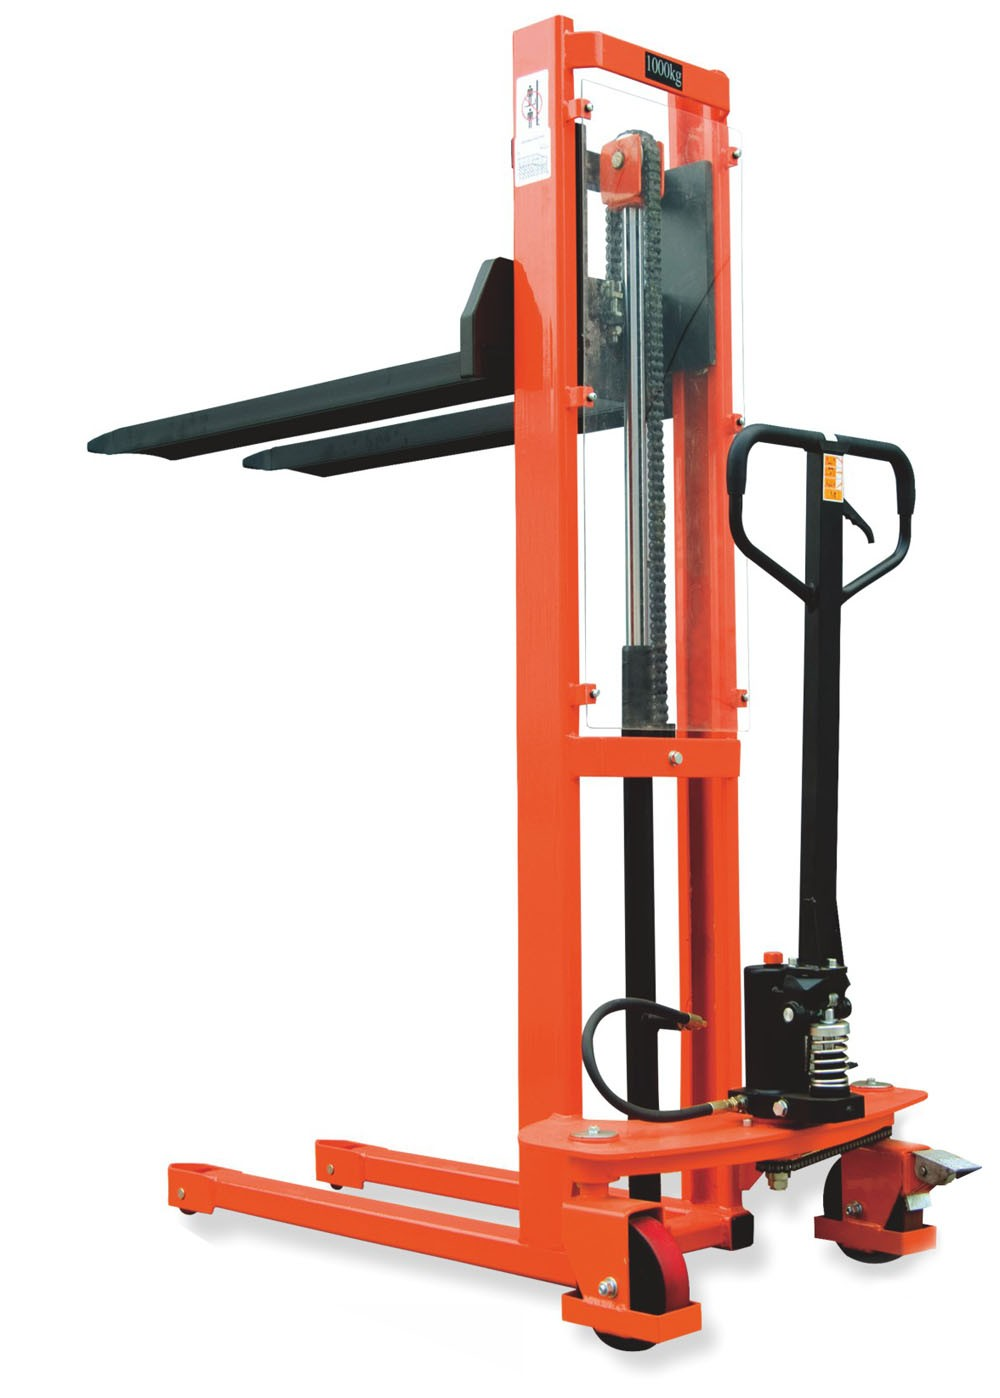 Manual Hydraulic Lift : Standard manual hydraulic stacker fc m lift kg